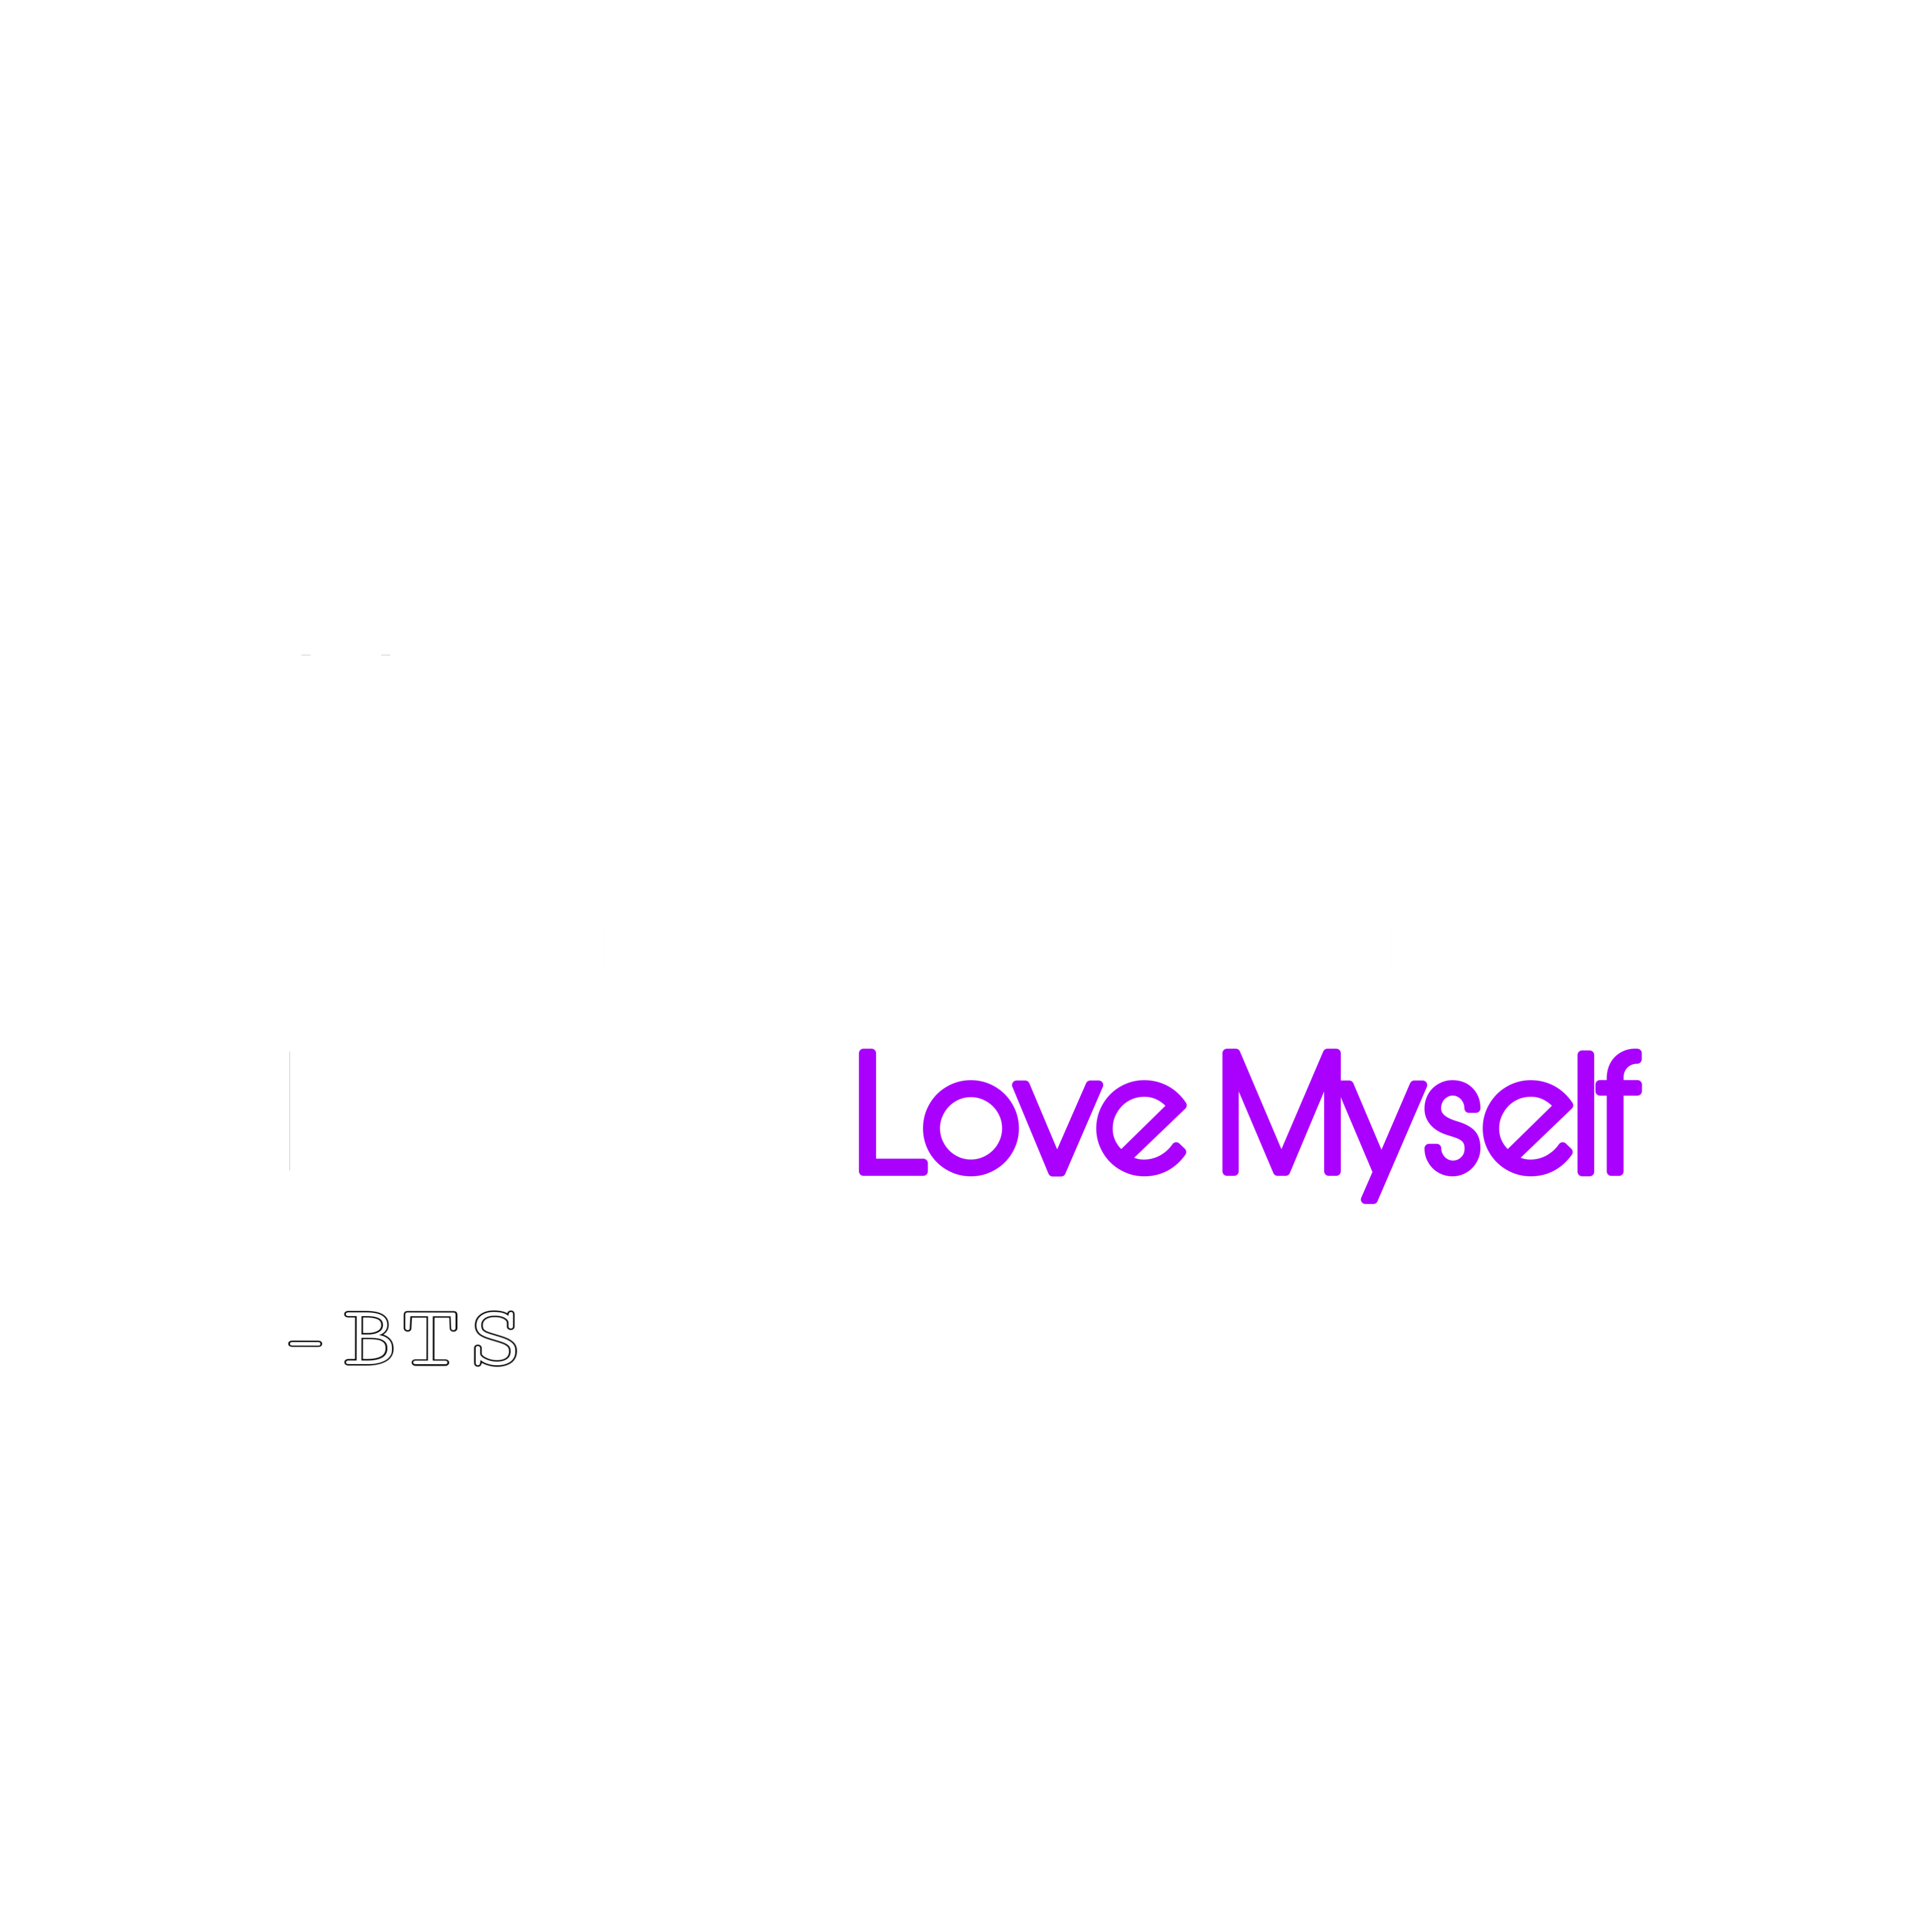 bts quotes quotesandsayings btsquotes lovemyself lyrics